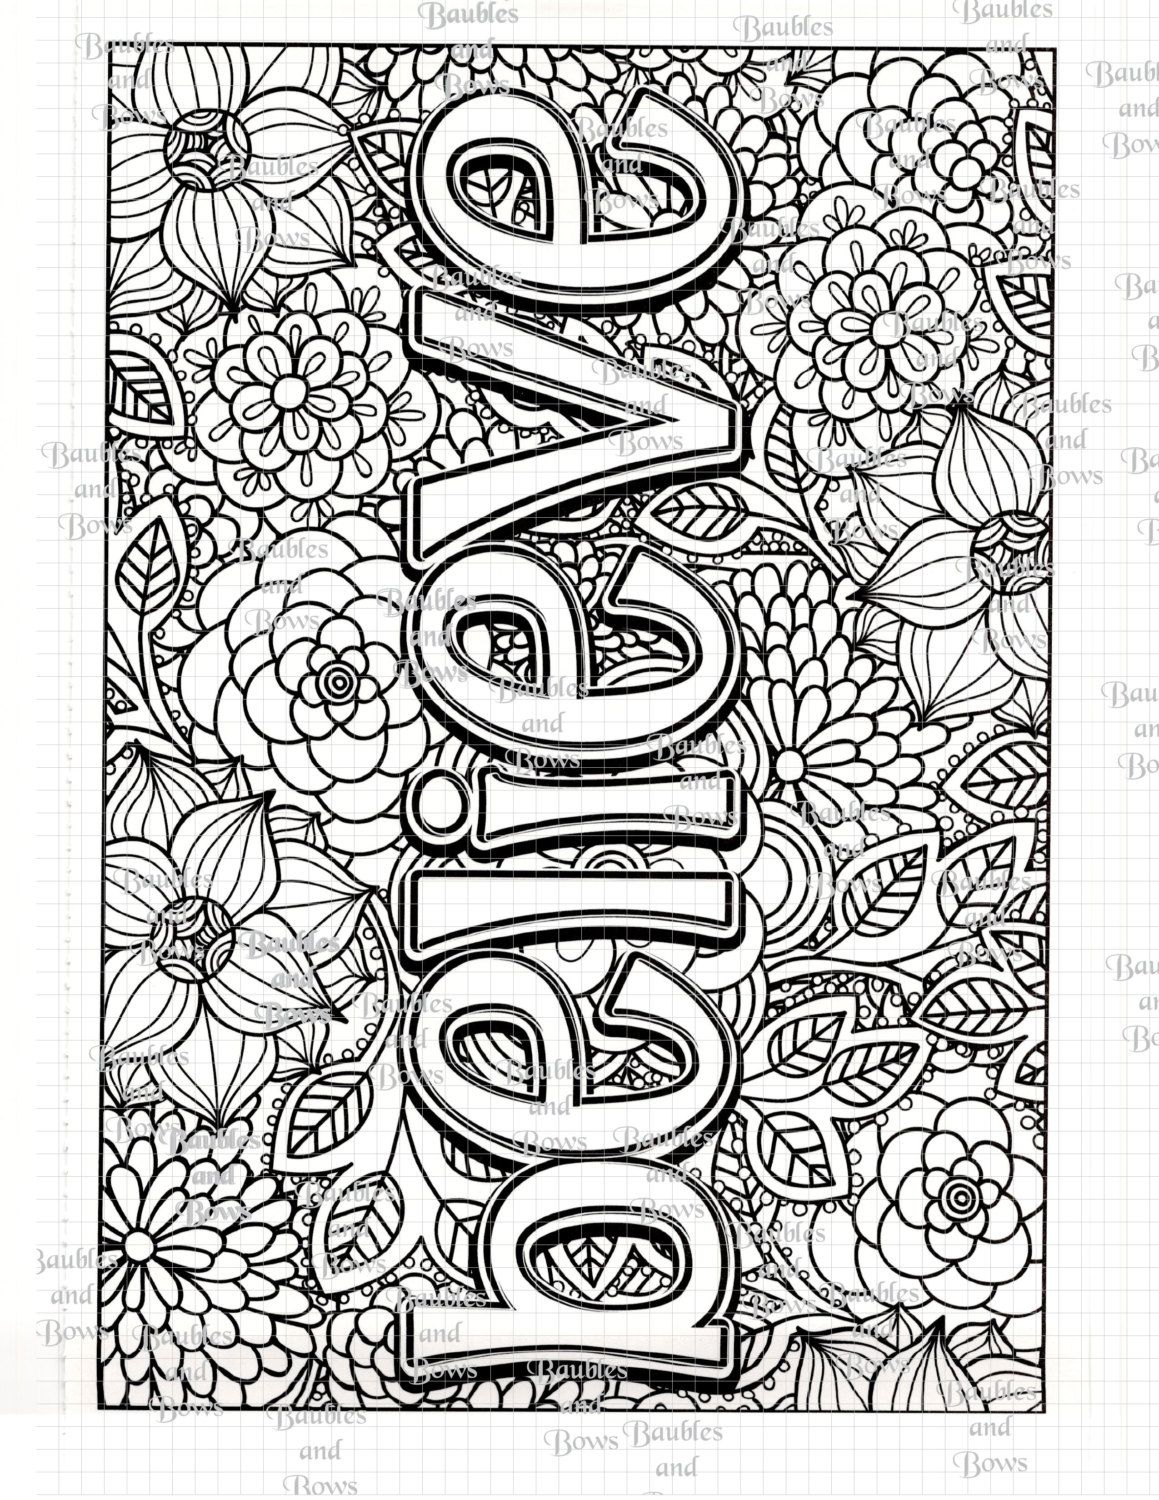 Believe Printable Adult Coloring Page Digital By Sewlacee On Etsy